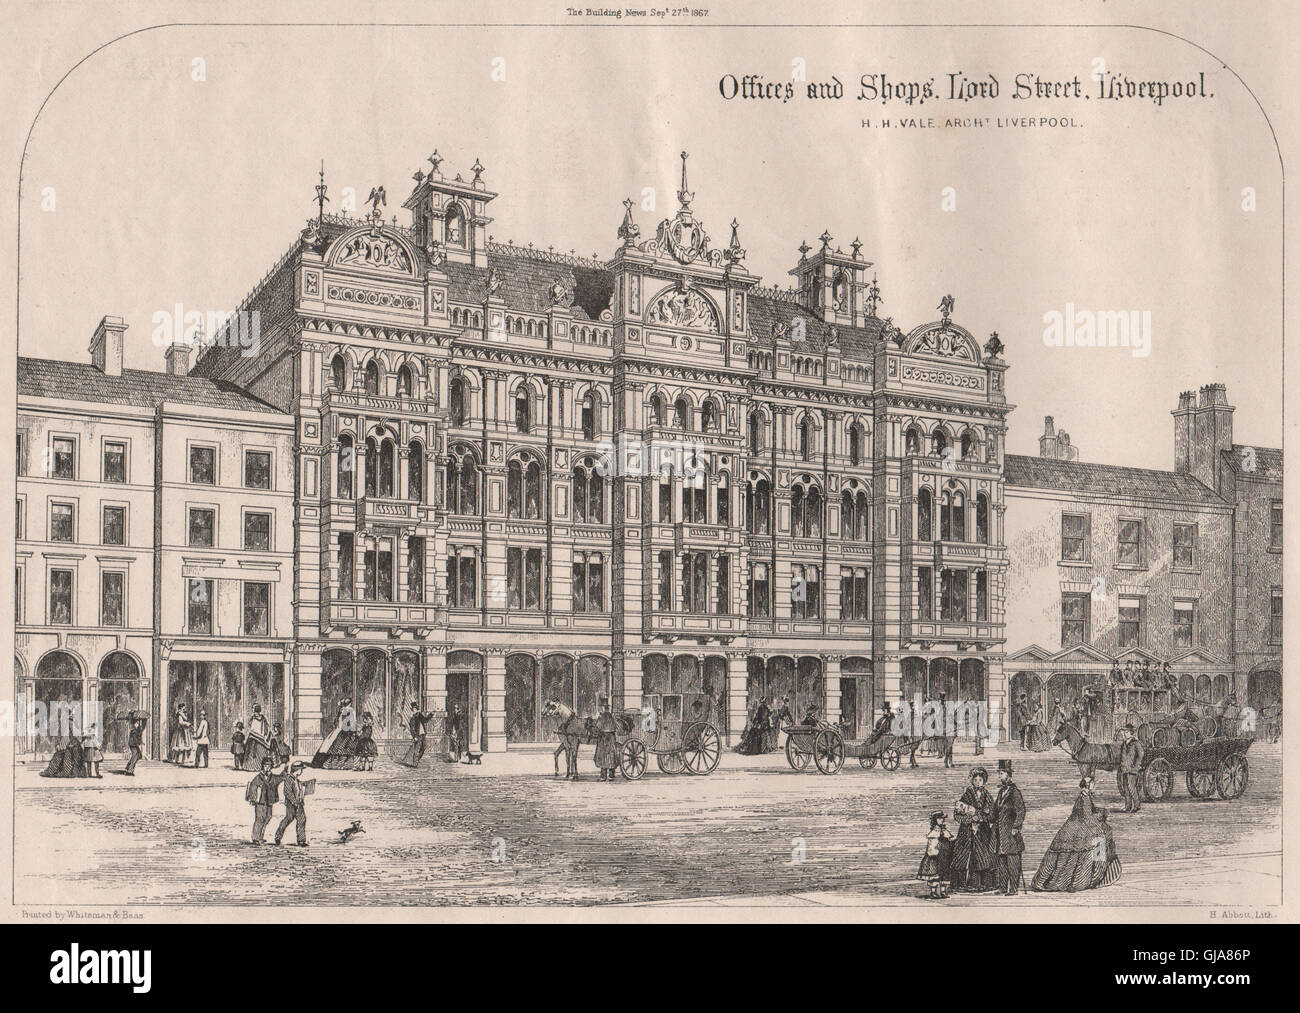 Offices and Shops. Lord Street. Liverpool; H.H. Vale Architect, Liverpool, 1867 Stock Photo